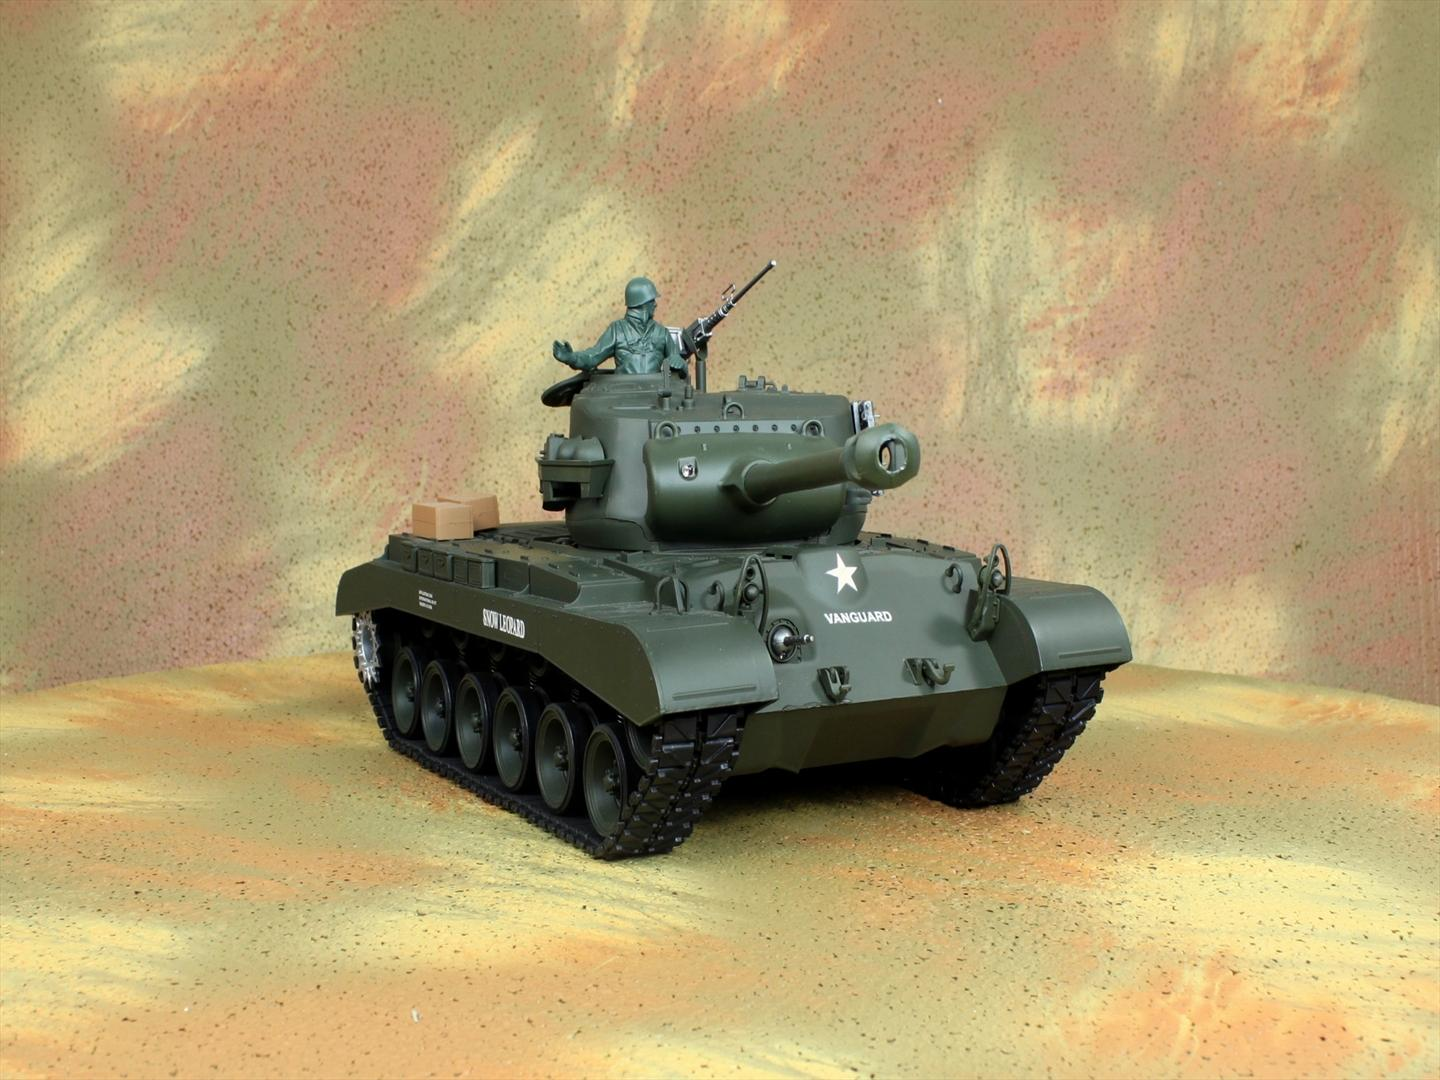 HENG-LONG Toys 3838 RC Scale Model Tank, WWII US M26 Pershing Snow Leopard Remote Control Tank.